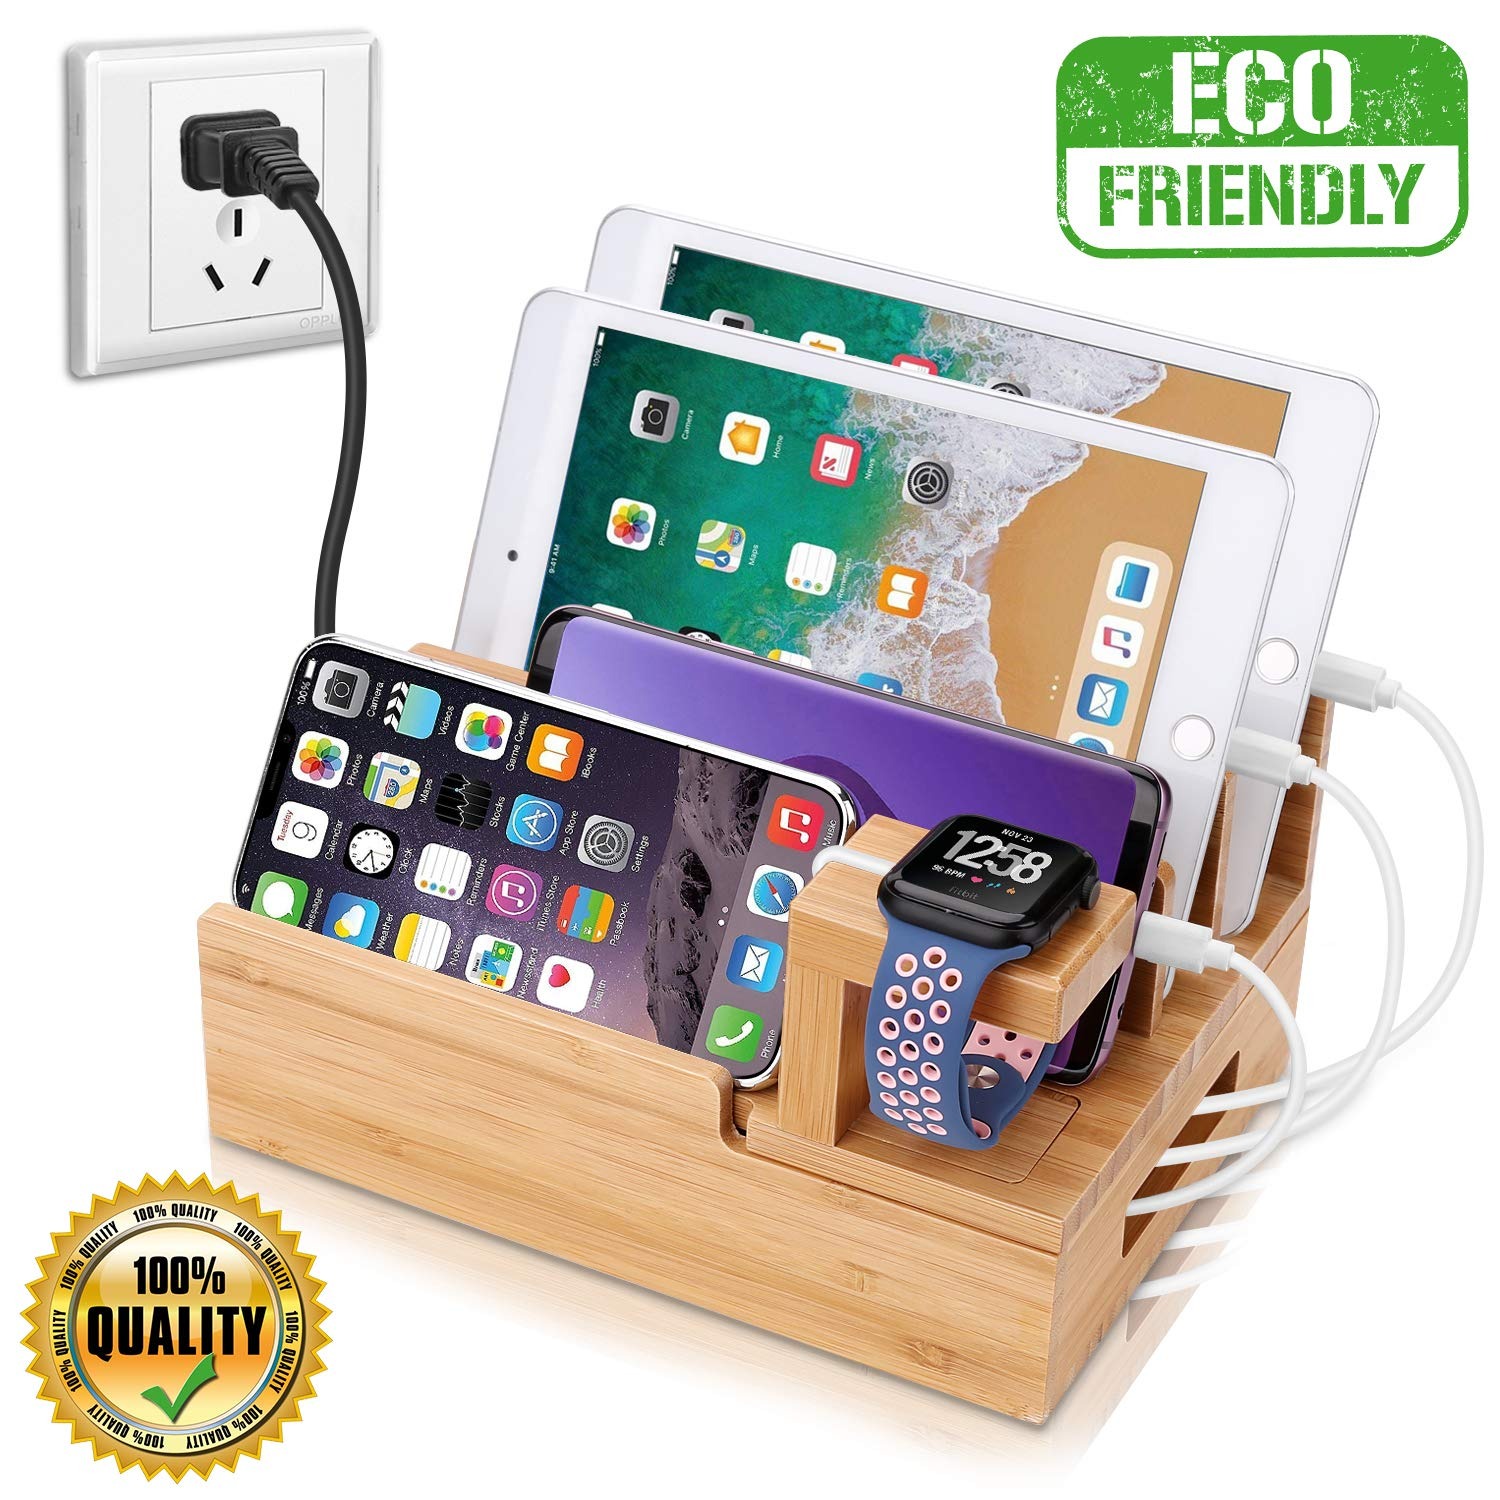 InkoTimes Charging Station with 5-Port USB Charger, Bamboo Charging Station for Multiple Devices of Apple iWatch iPhone iPad Samsung, Universal iOS and Android Cell Phones & Tablets by InkoTimes